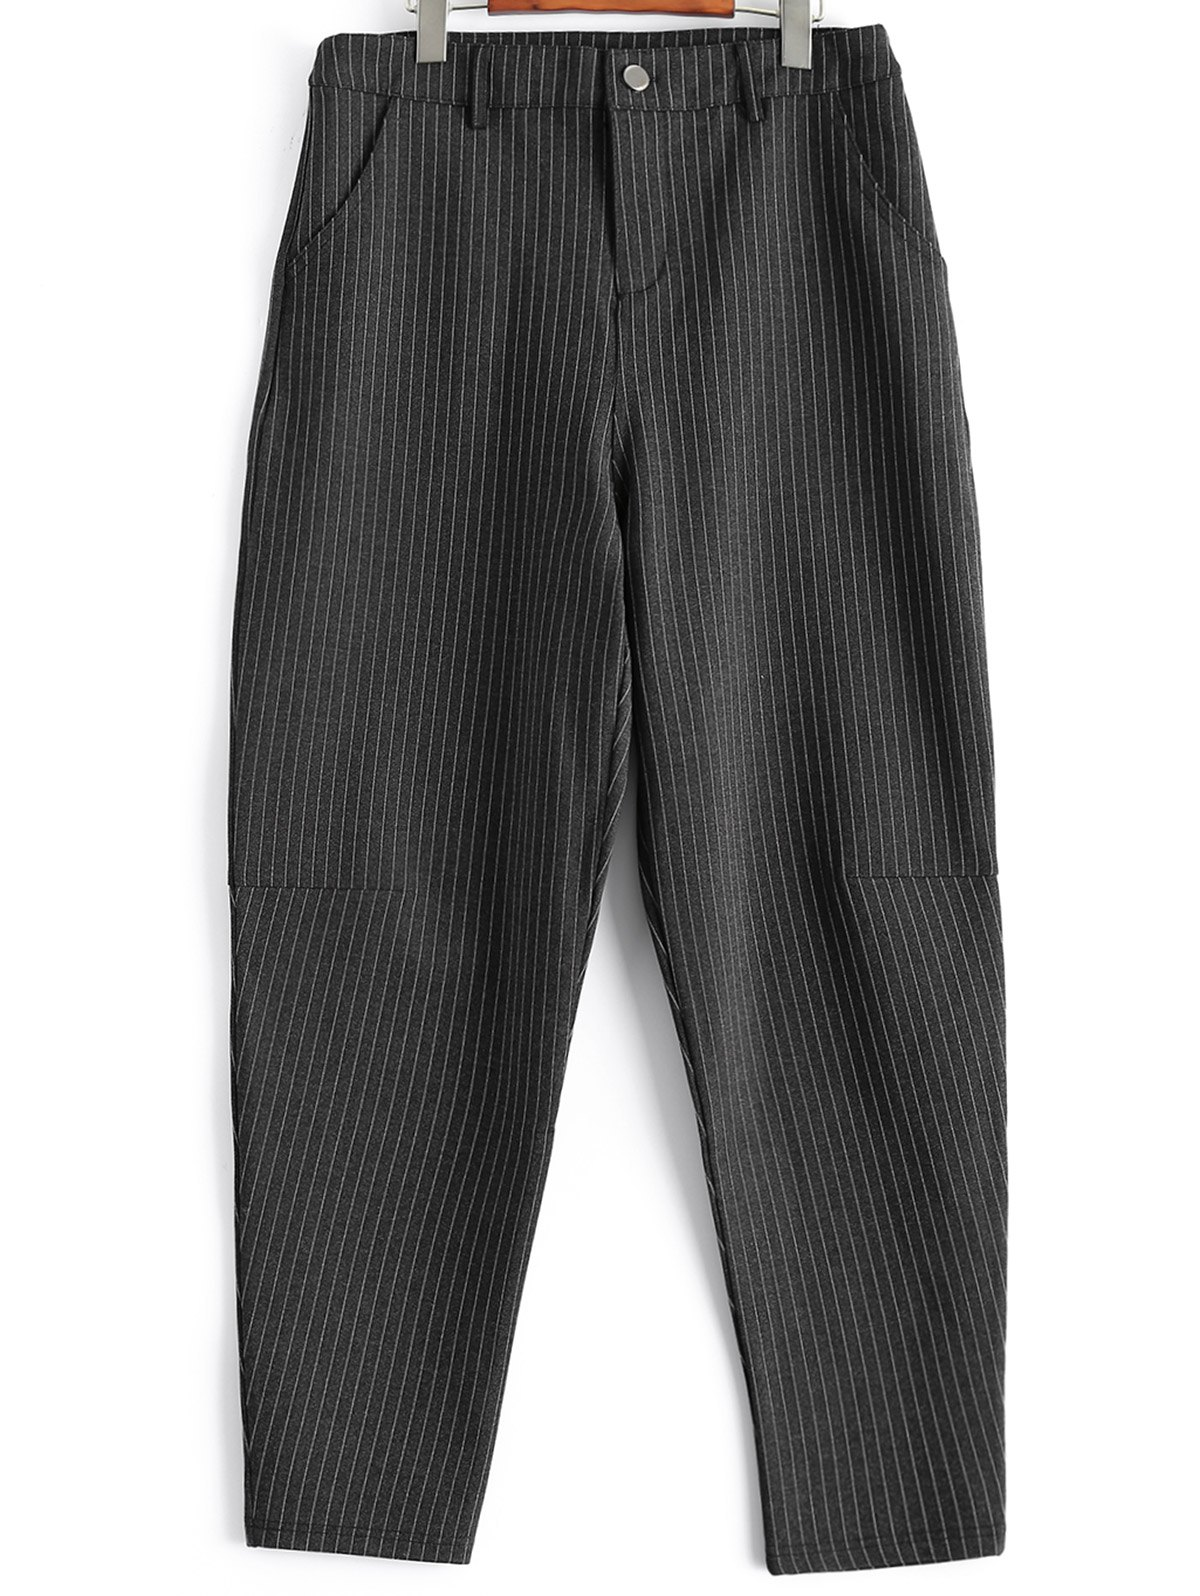 Sale Plus Size Striped Harem Pants